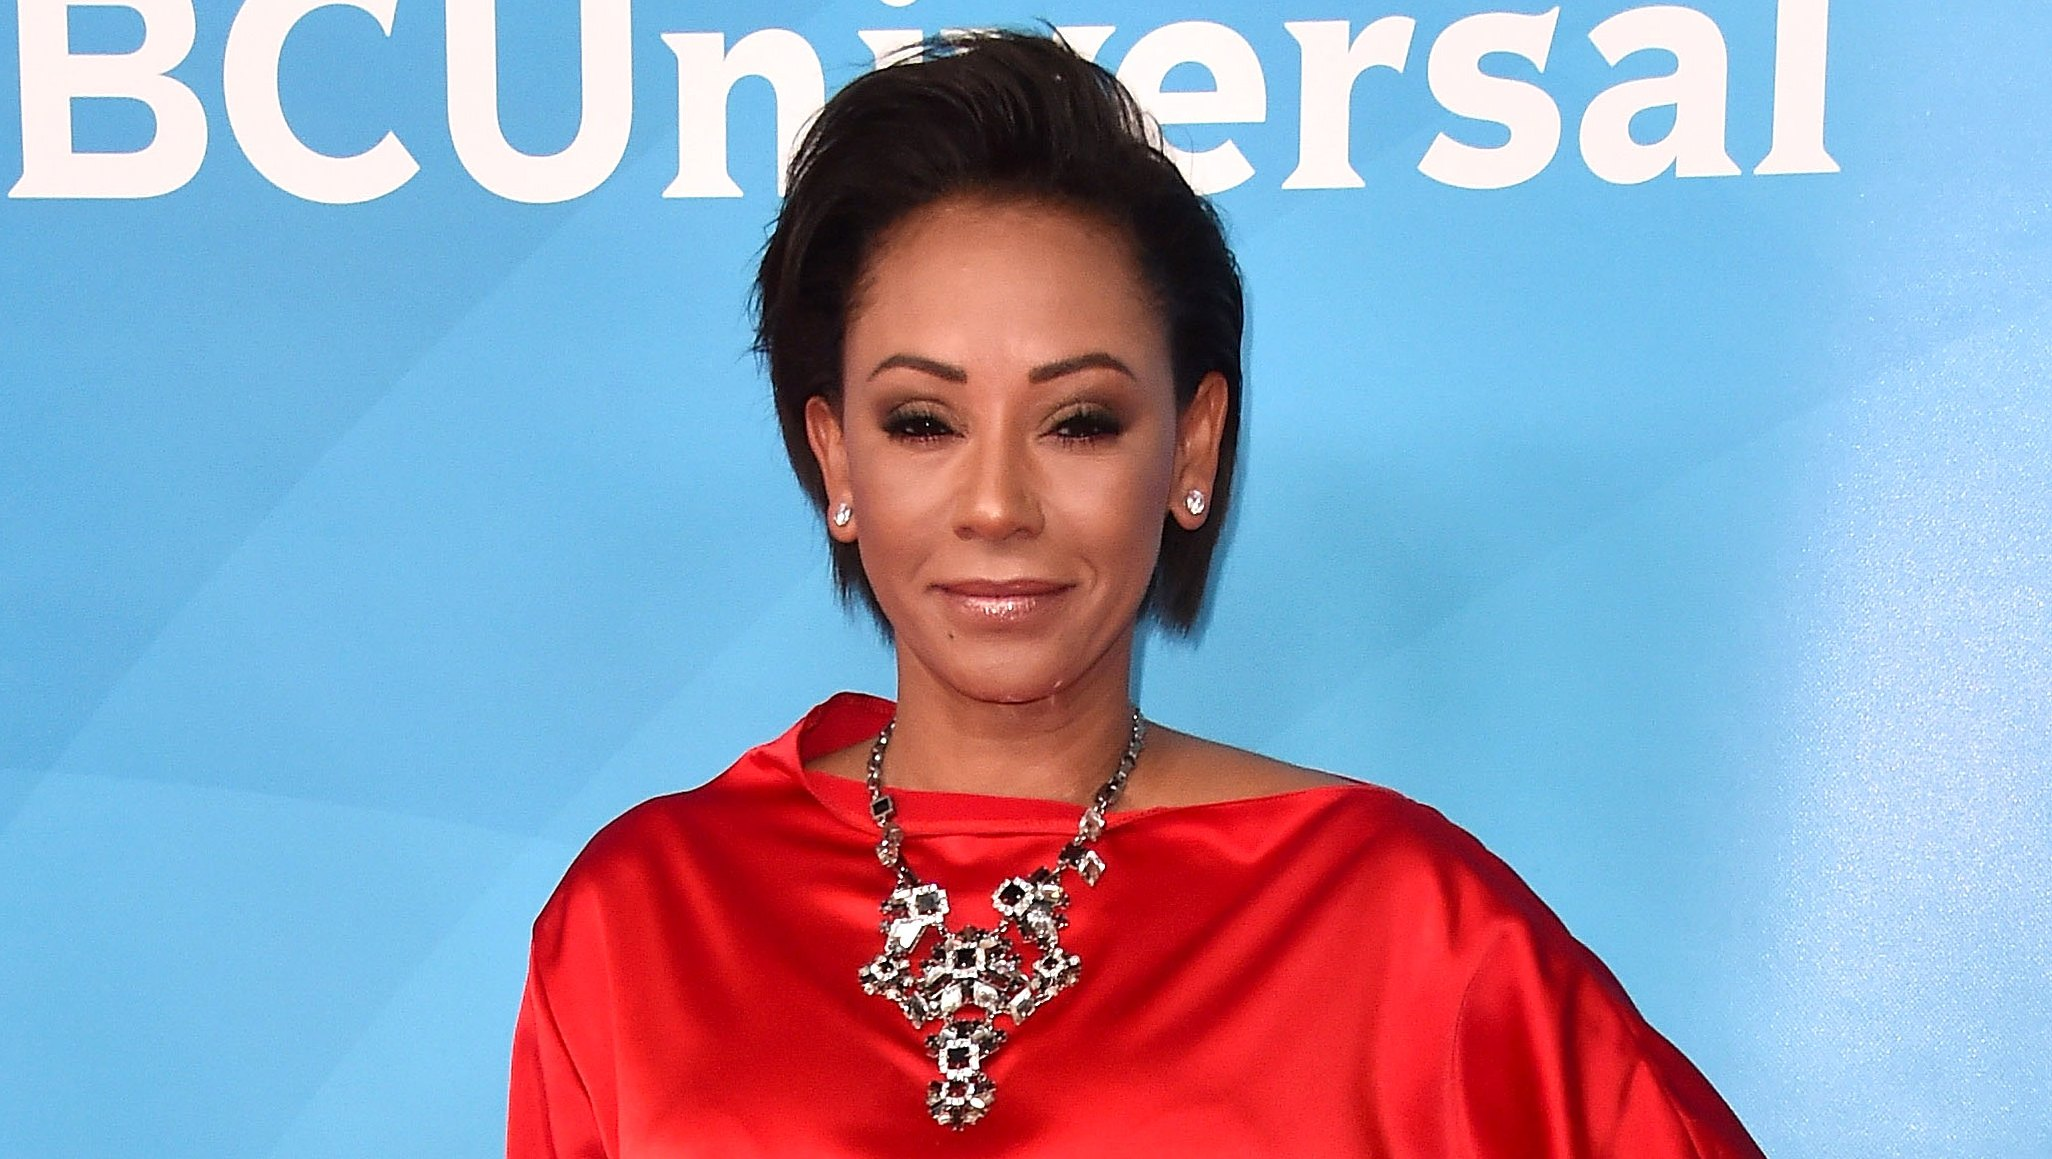 Spice Girls Visit Mel B in the Hospital After She Breaks 2 Ribs and Severs Her Hand